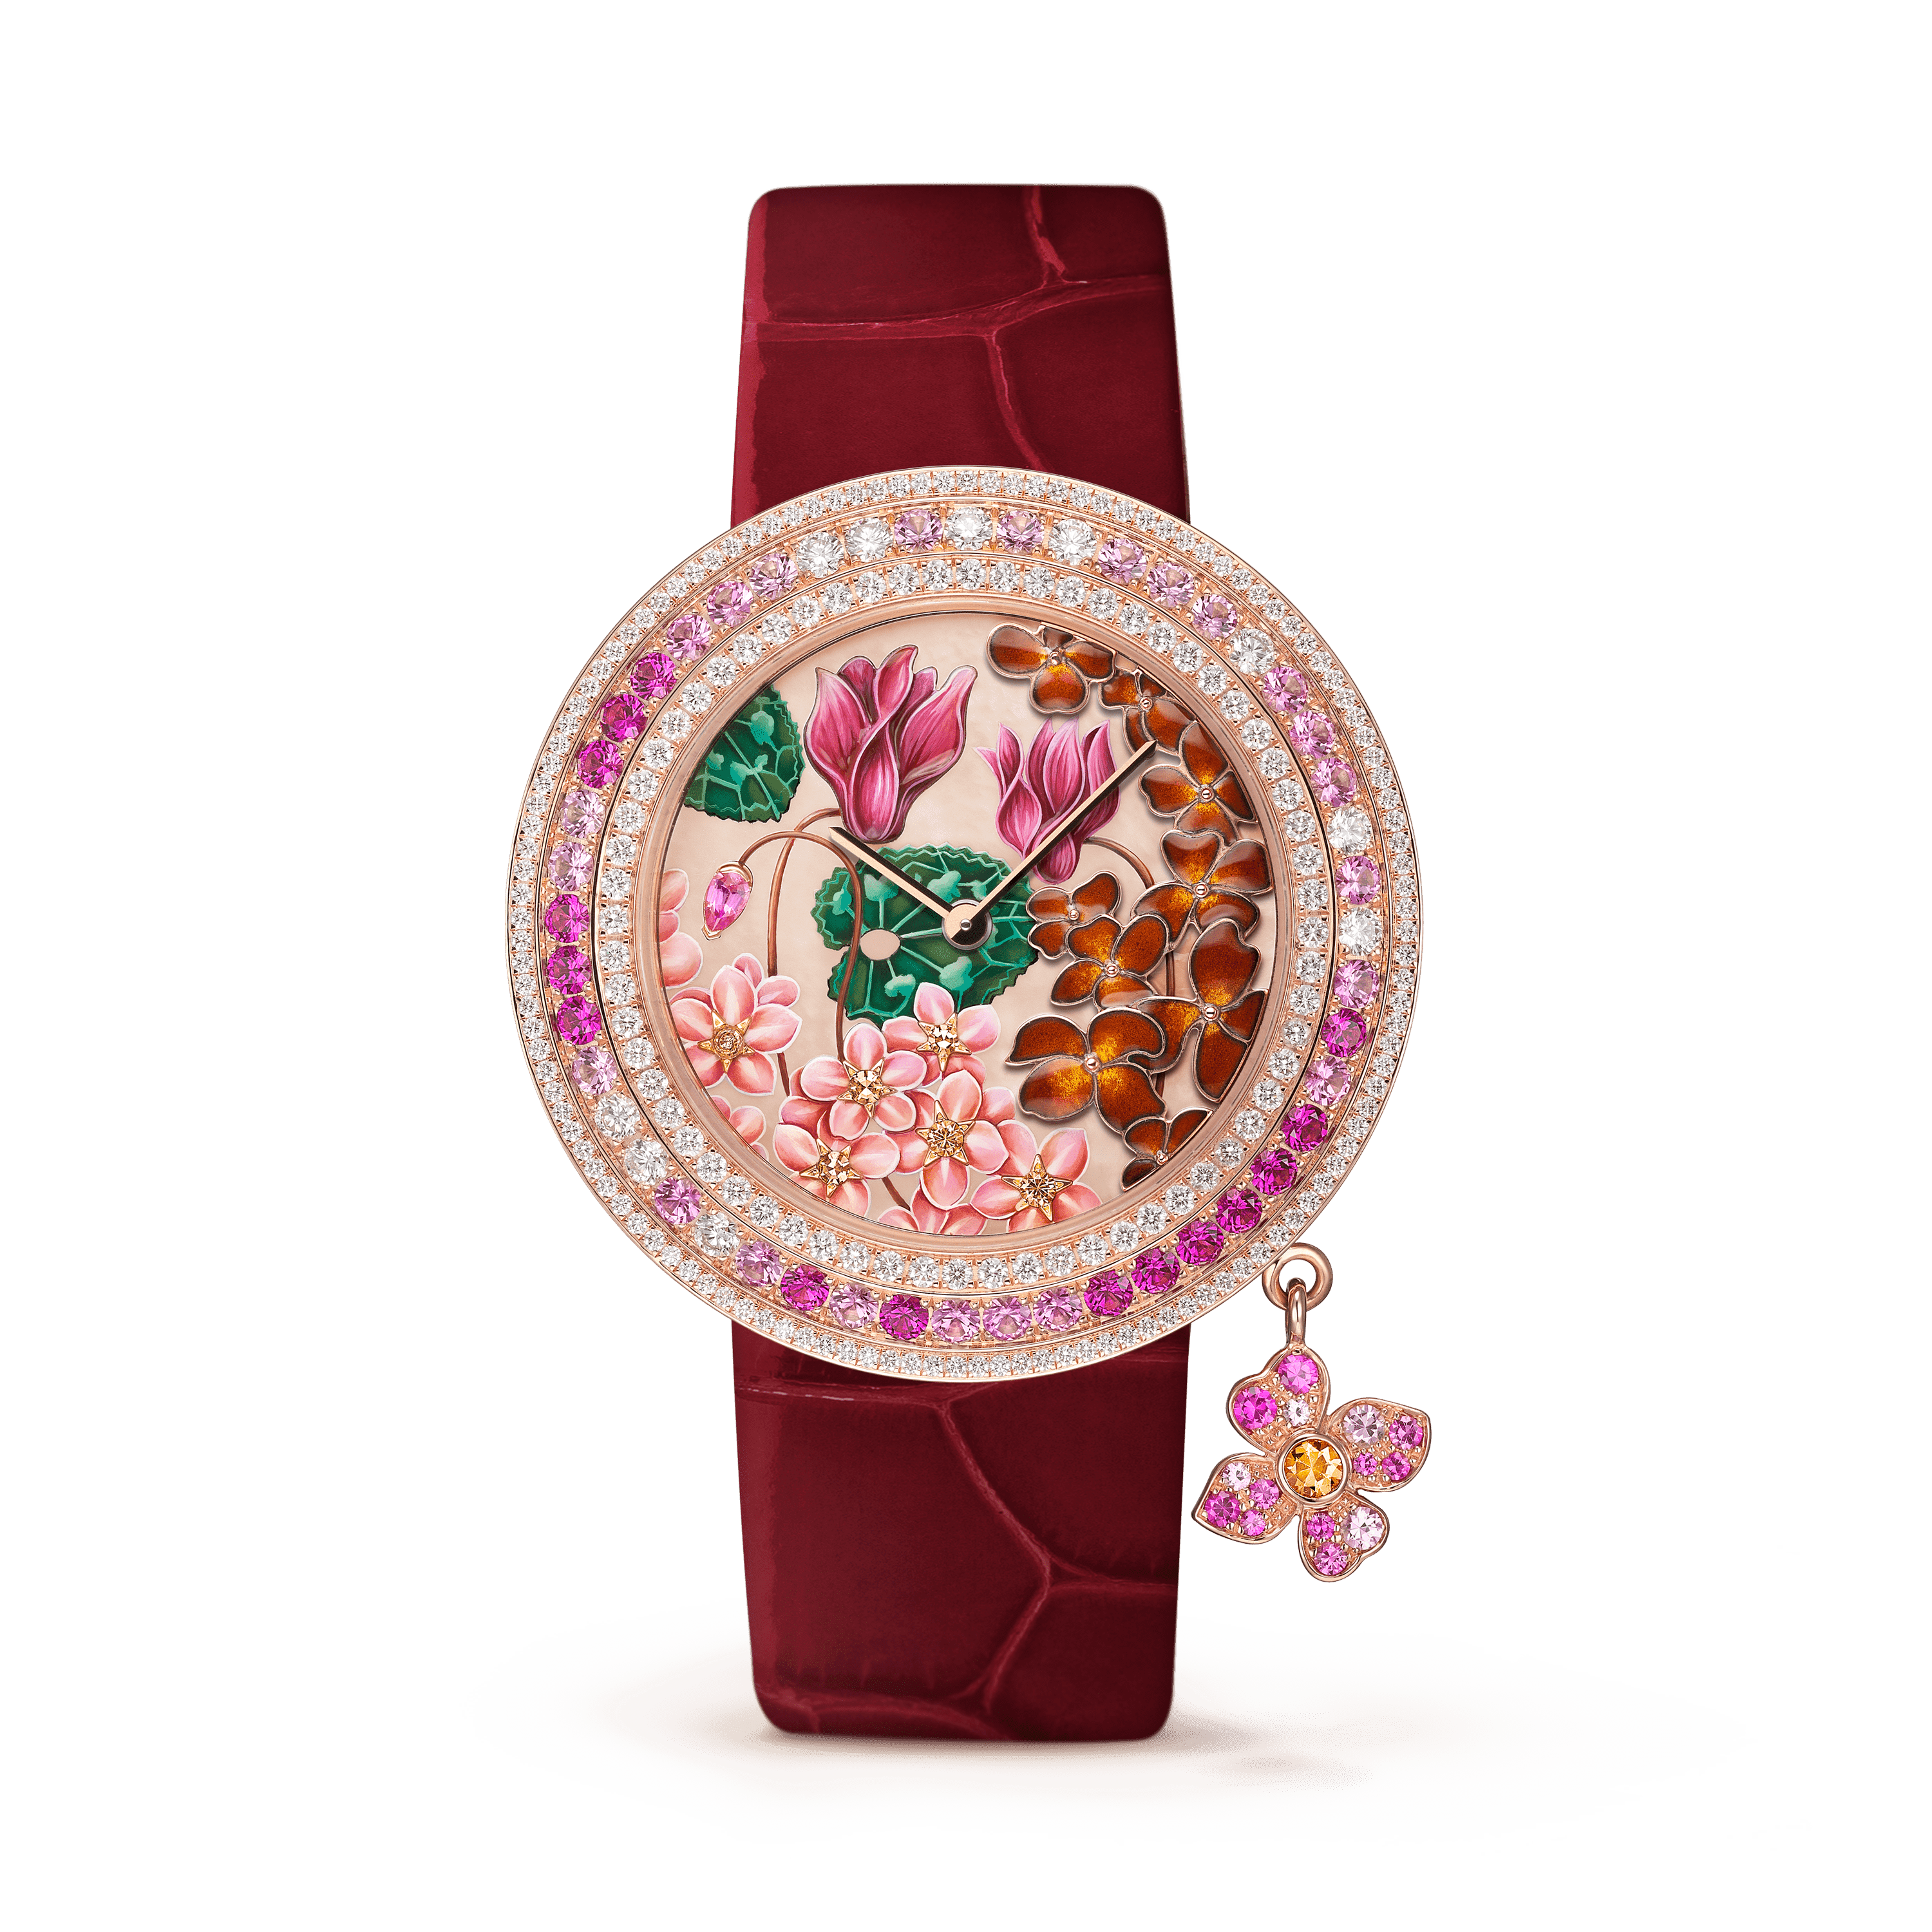 Charms Extraordinaire Amour Watch,Shiny alligator, square scale,self interchangeable - Front View - VCARO4JW00 - Van Cleef & Arpels